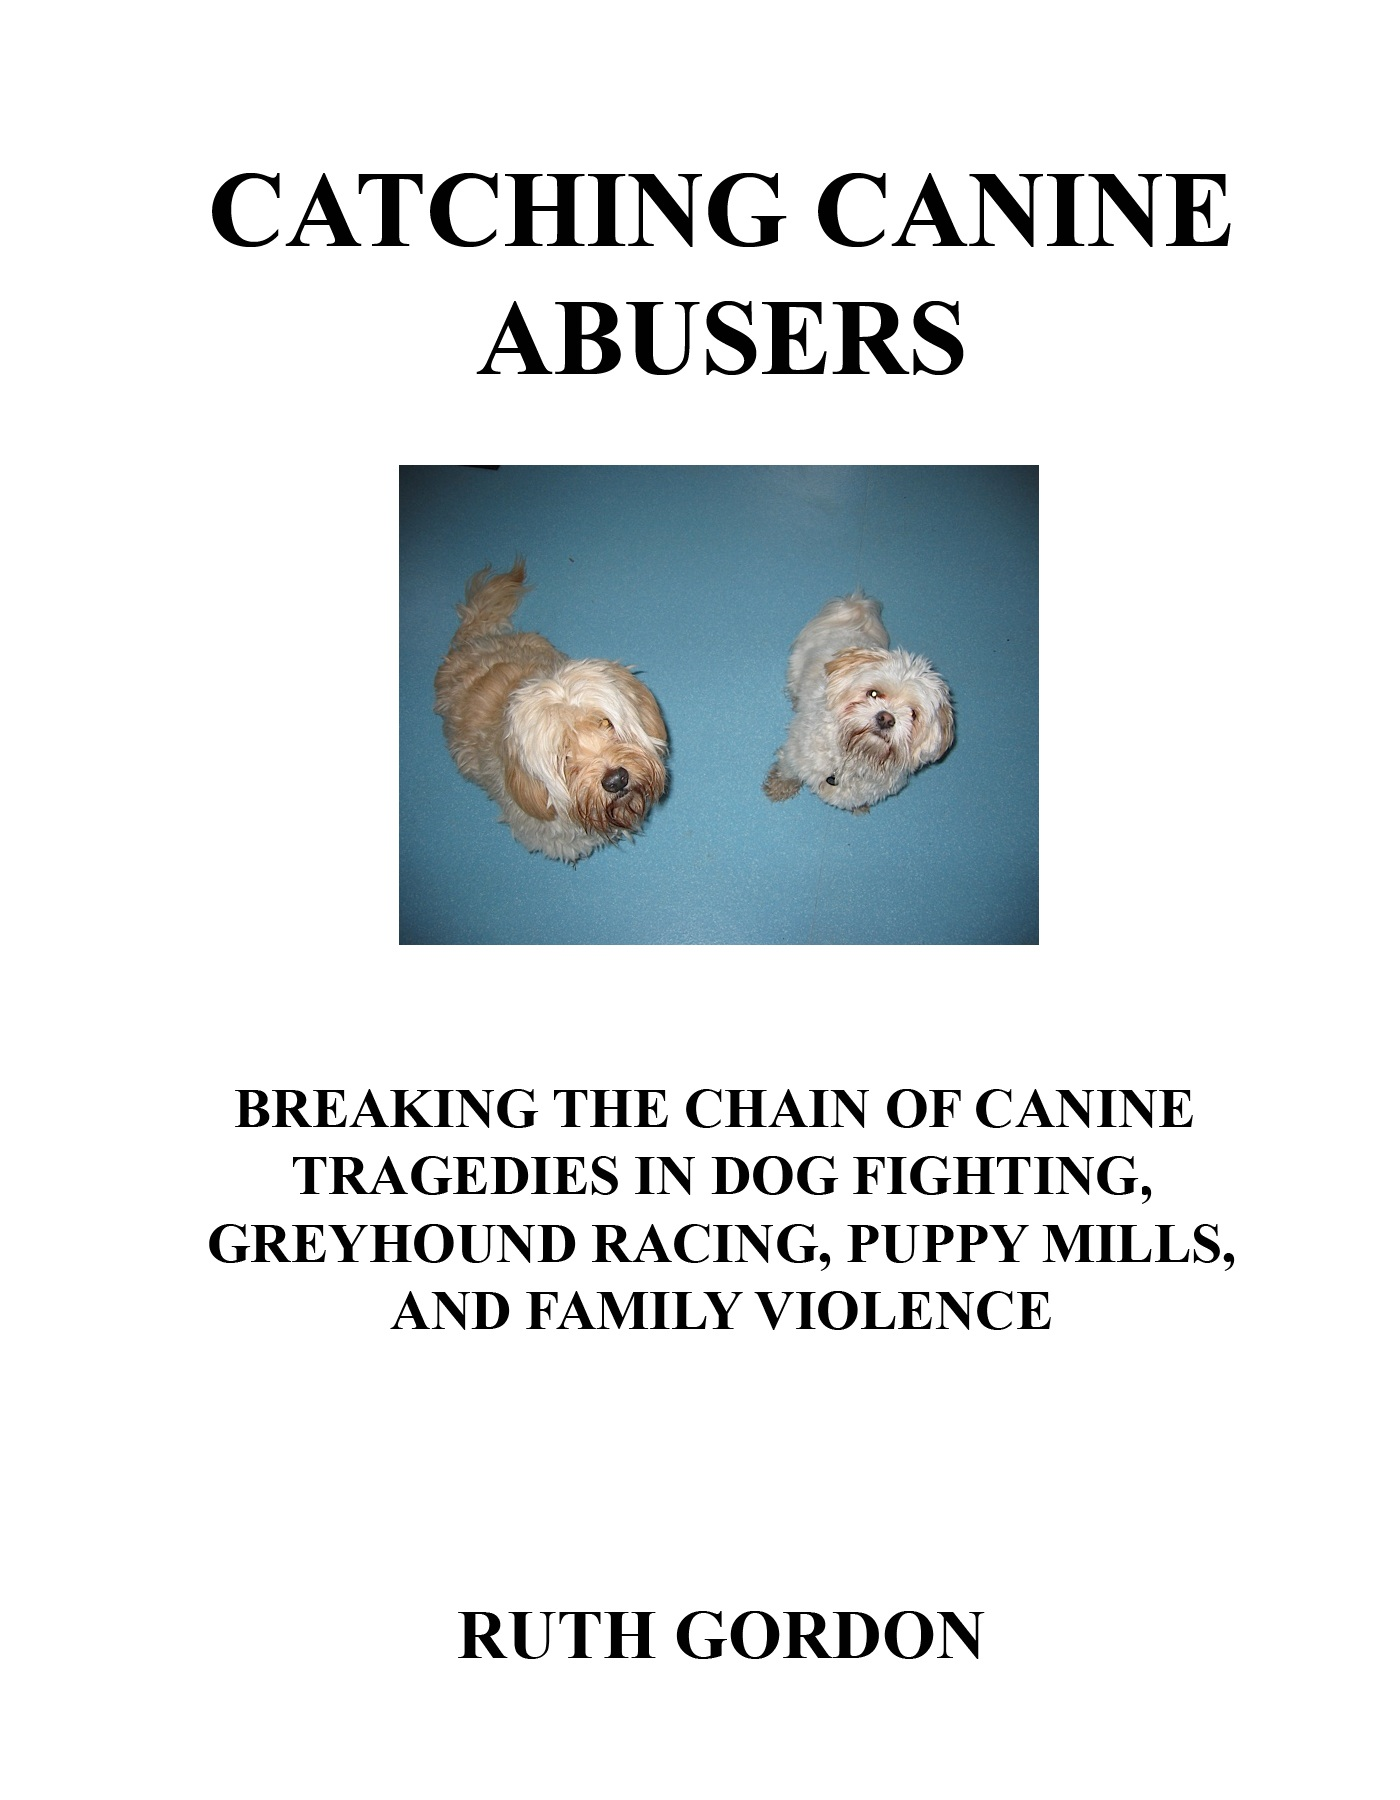 Catching Canine Abusers